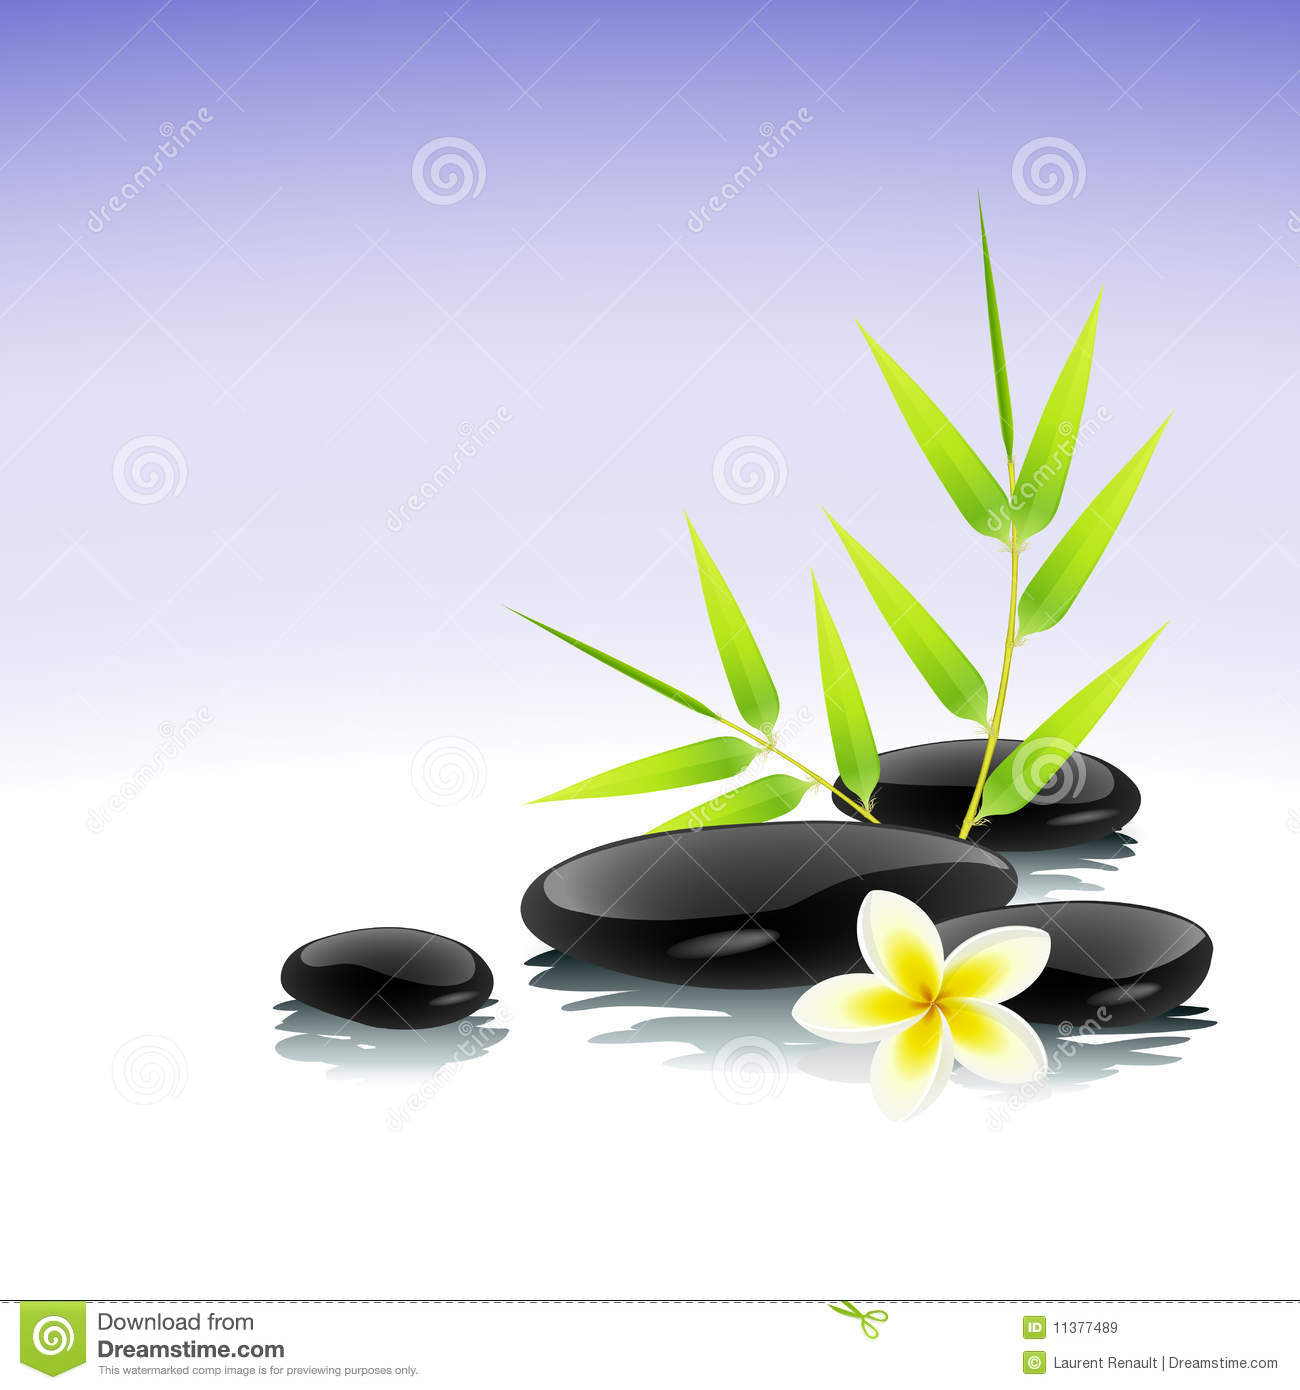 Zen Background Royalty Free Stock Images - Image: 11377489